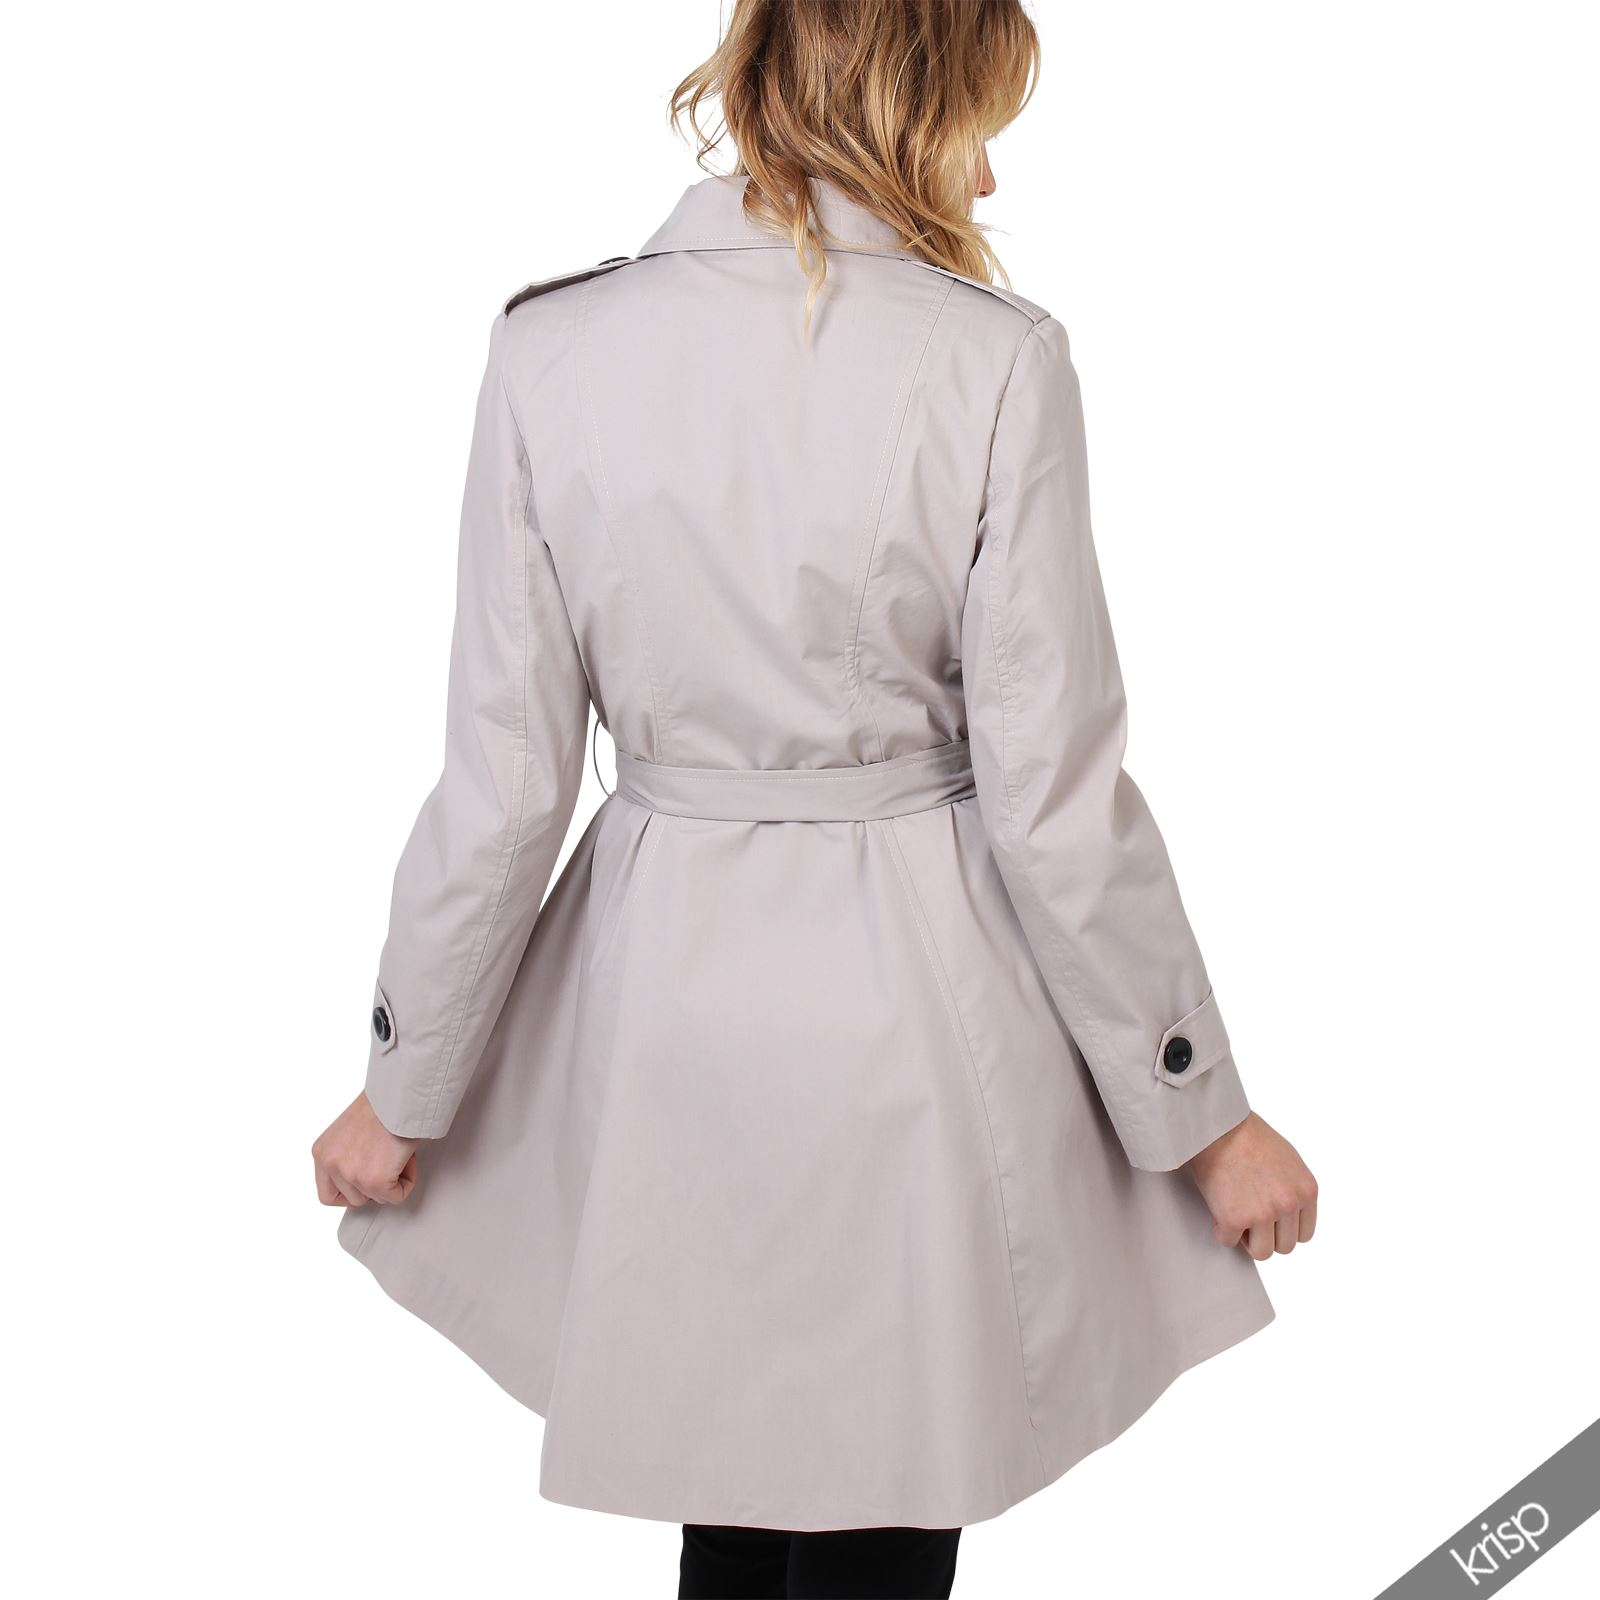 UK-Ladies-Classic-Asymmetric-Mac-Jacket-Womens-Military-Belted-Trench-Coat thumbnail 17